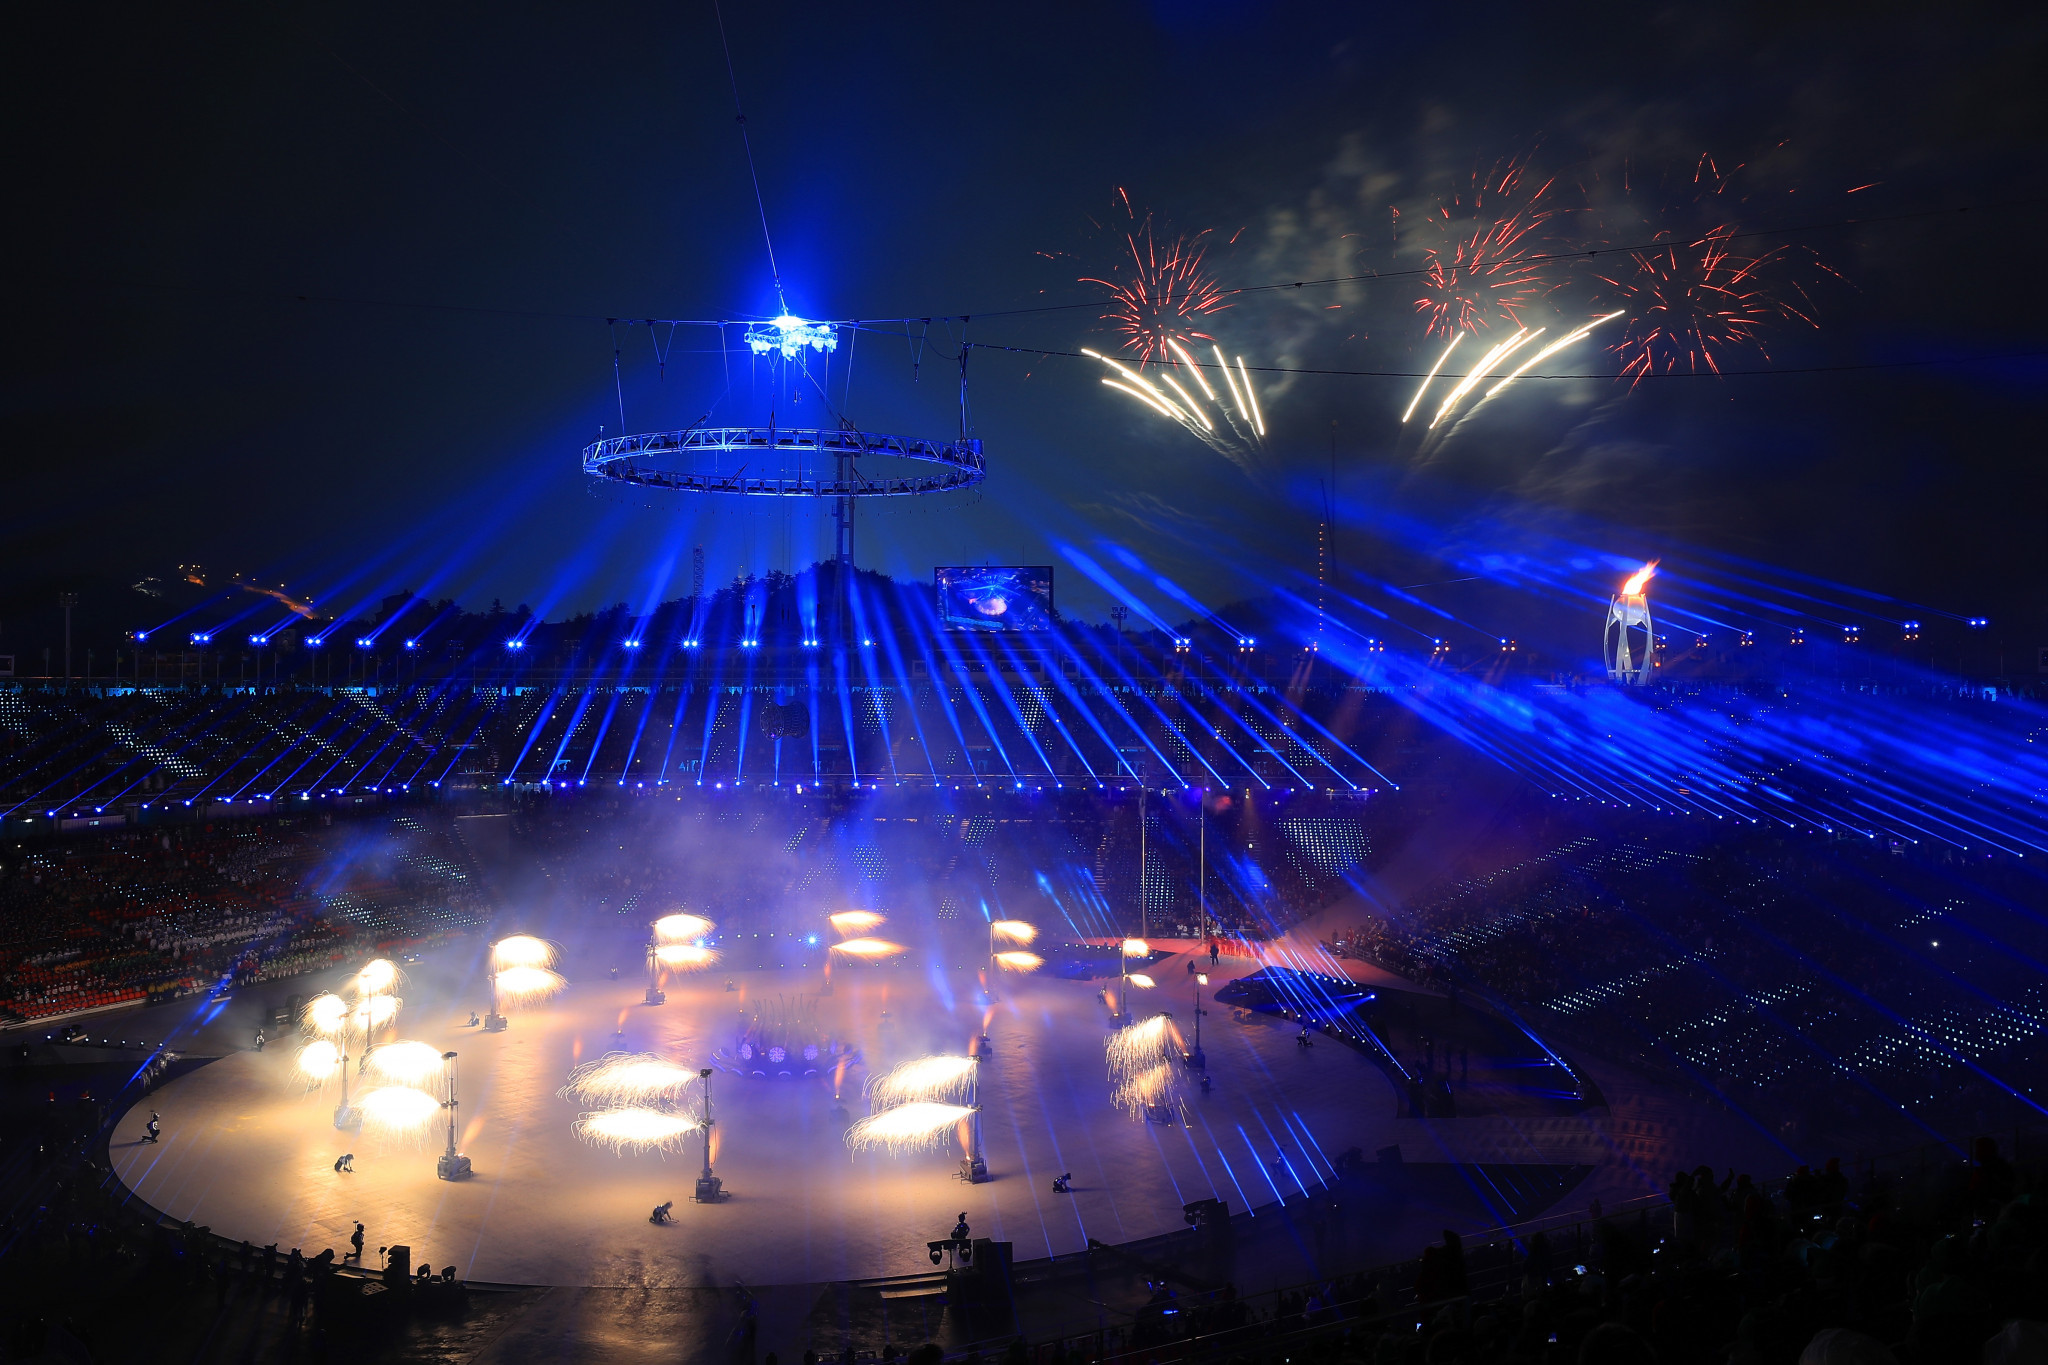 The Opening Ceremony of last year's Winter Olympic Games in Pyeongchang was targeted by hackers last year ©Getty Images